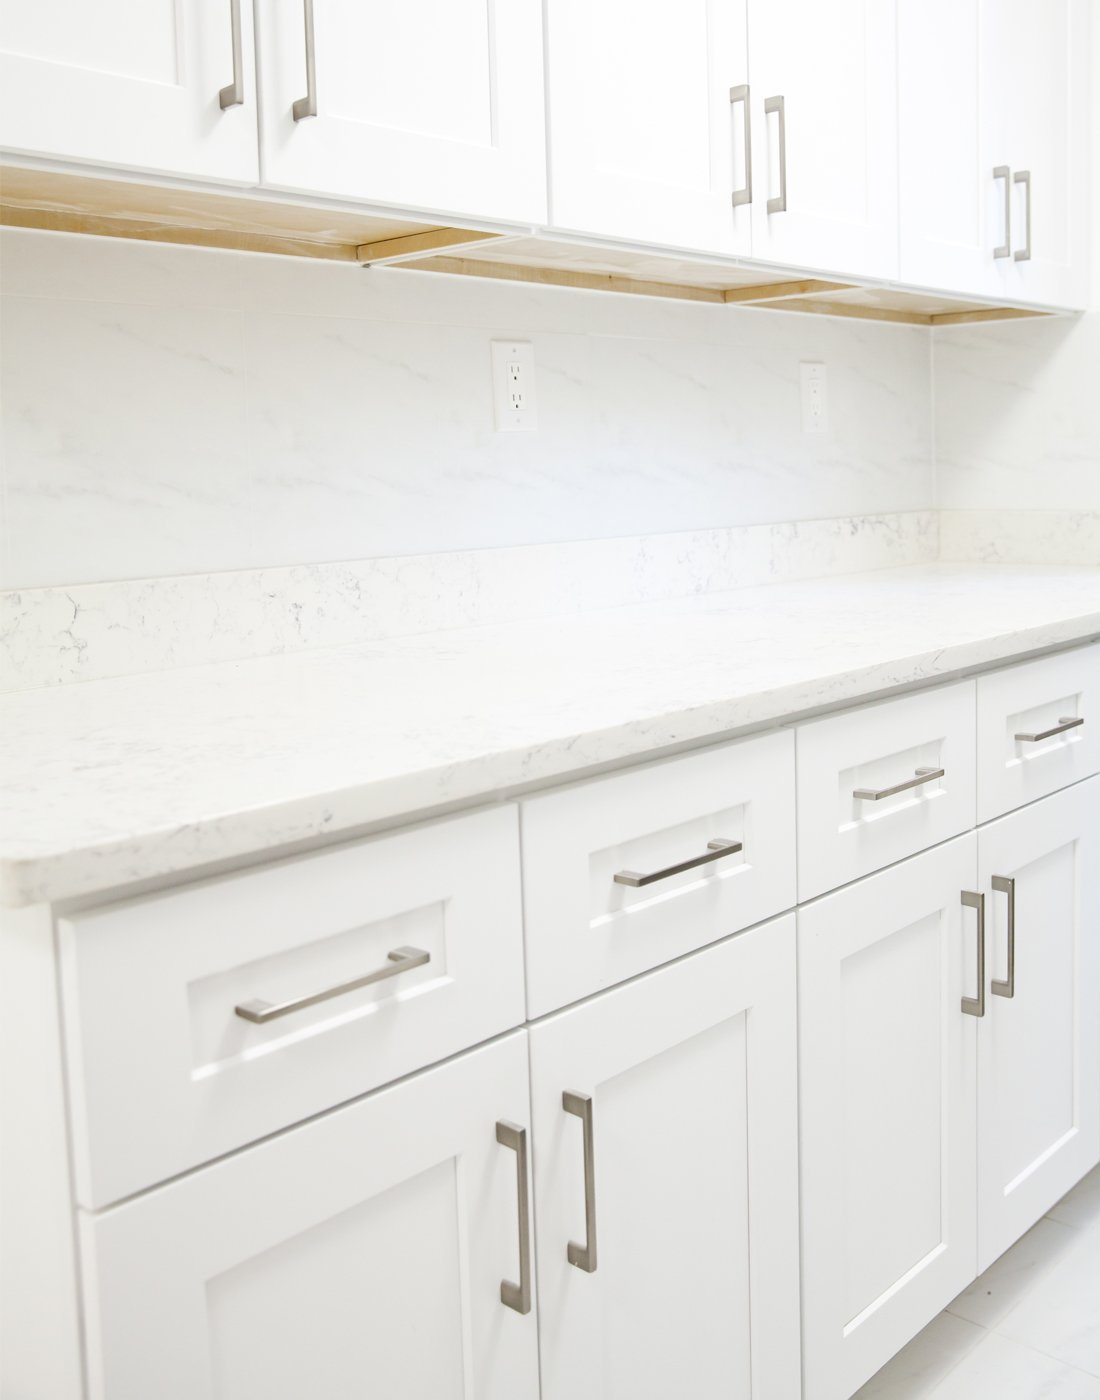 Newely refinished cabinets in a kitchen